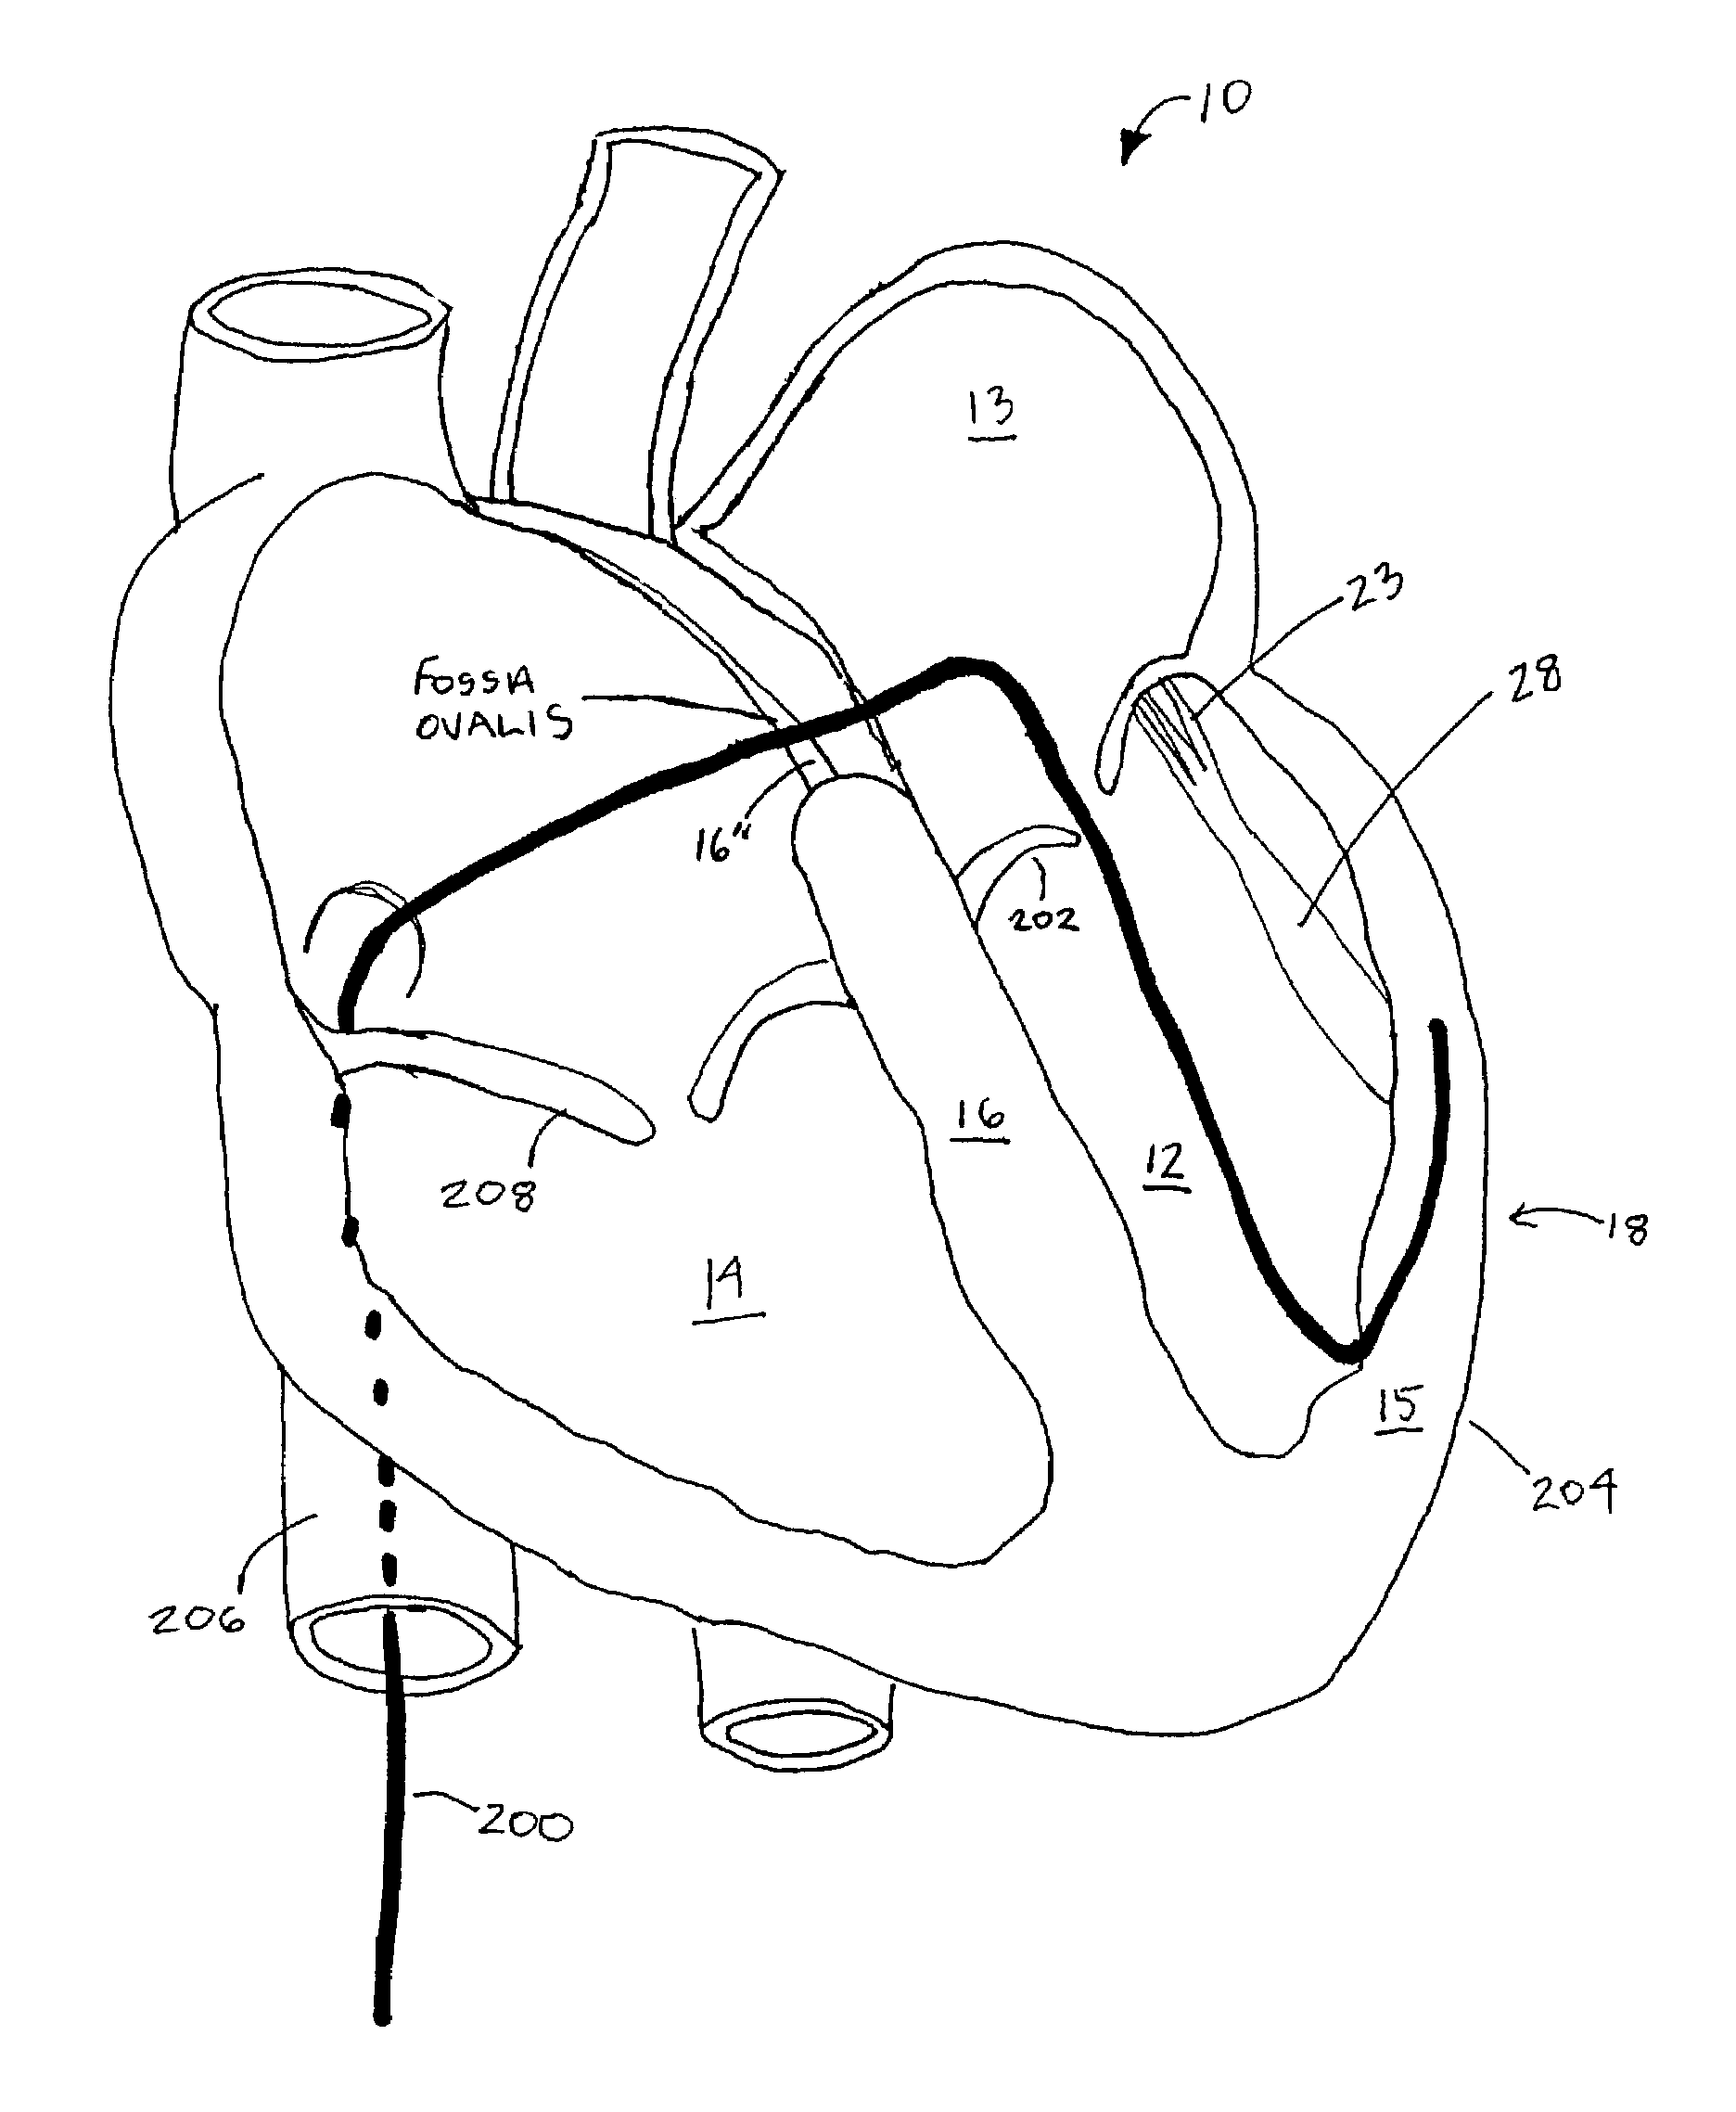 patent us7311731 prevention of myocardial infarction induced Case 220 Tractor Diagrams patent drawing